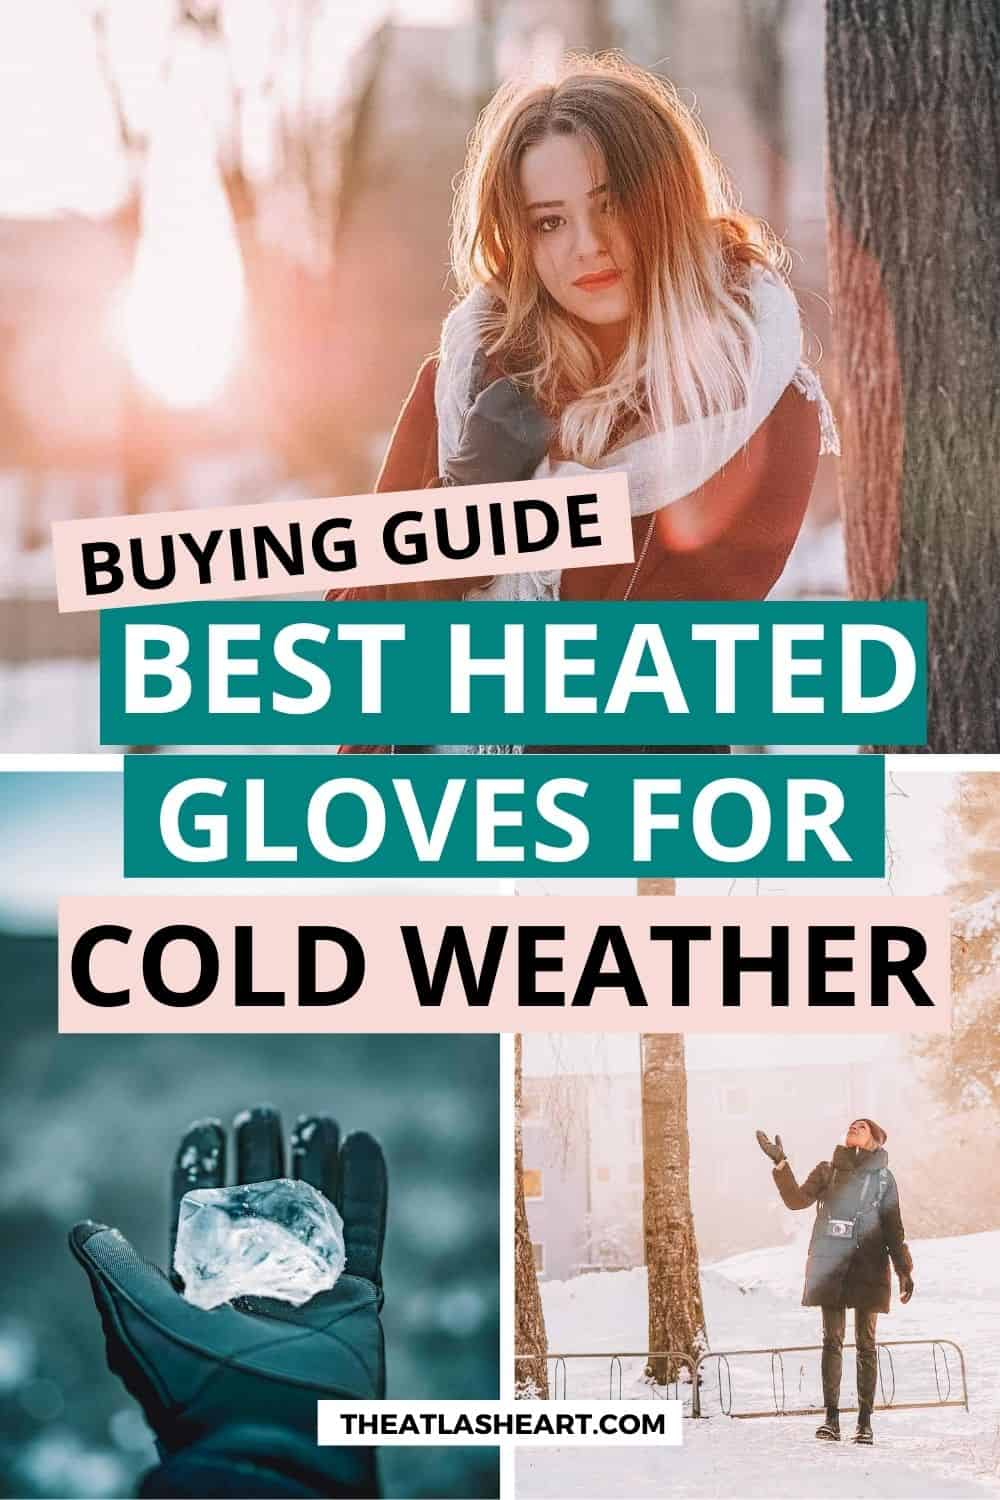 Best Heated Gloves for Cold Weather (2021 Buying Guide)